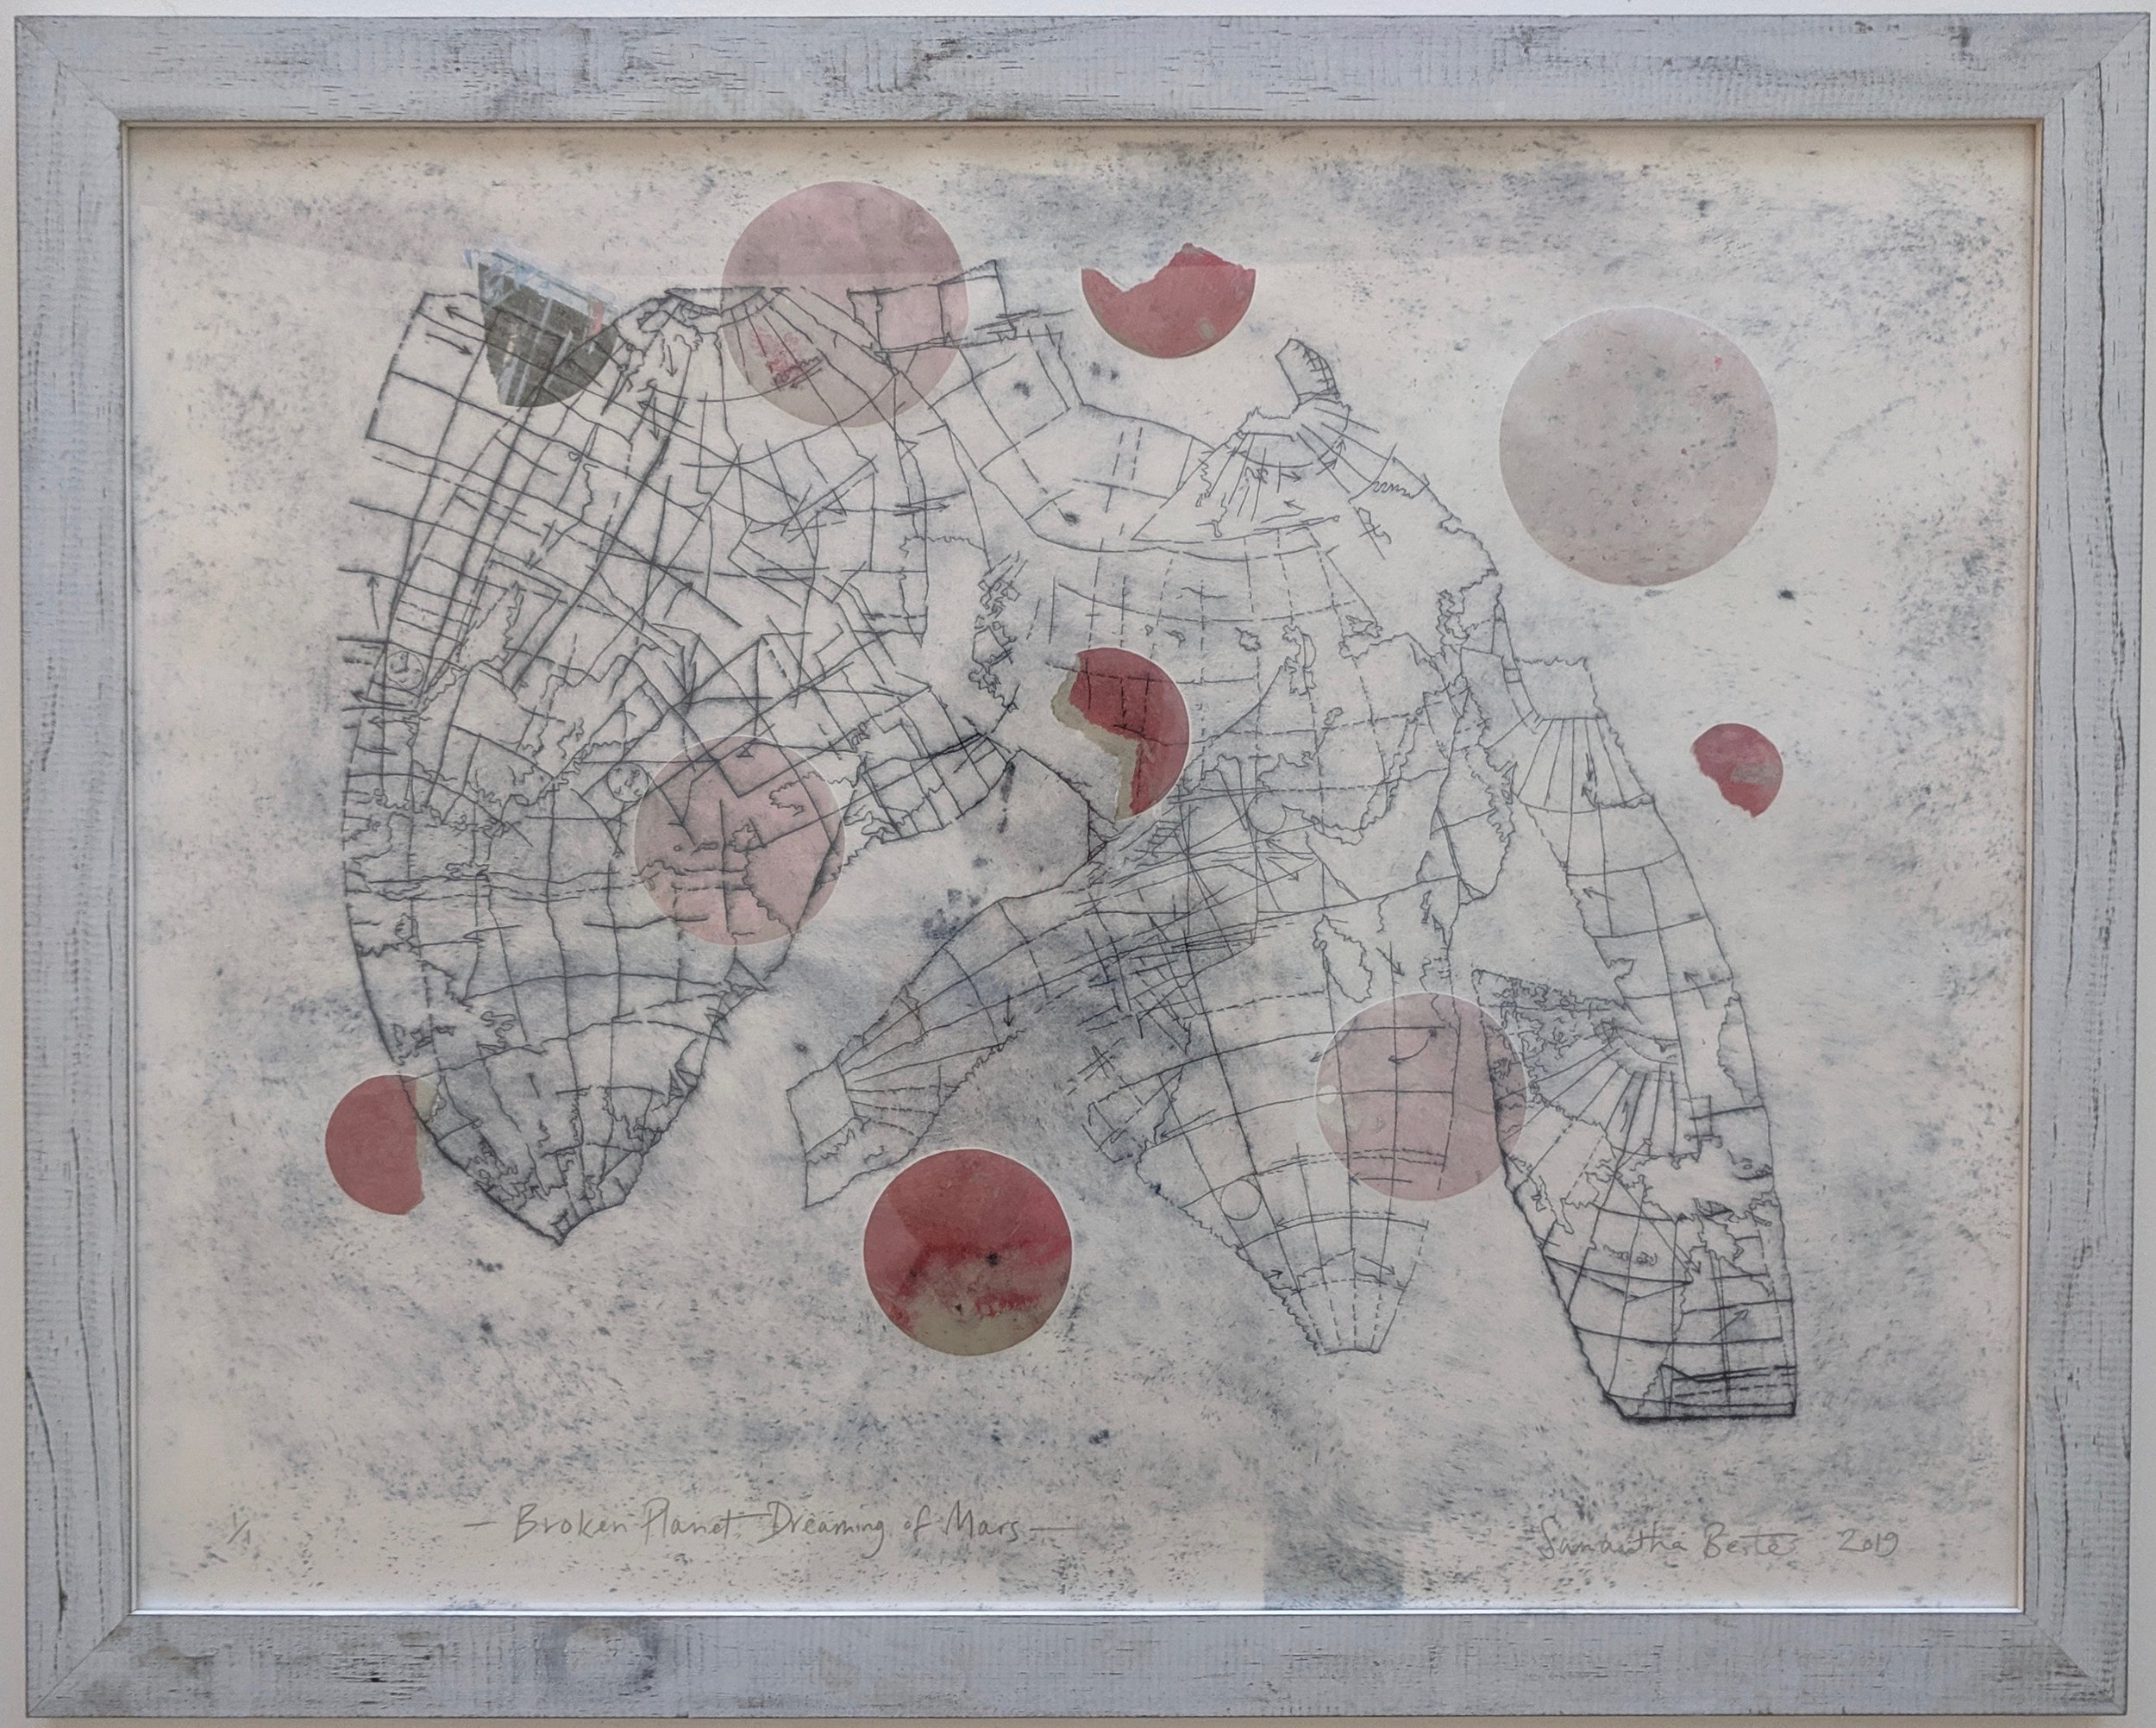 """Broken Planet Dreaming of Mars"", drypoint etching with chine-colle on Rives BFK, 24"" x 30"", 2019"